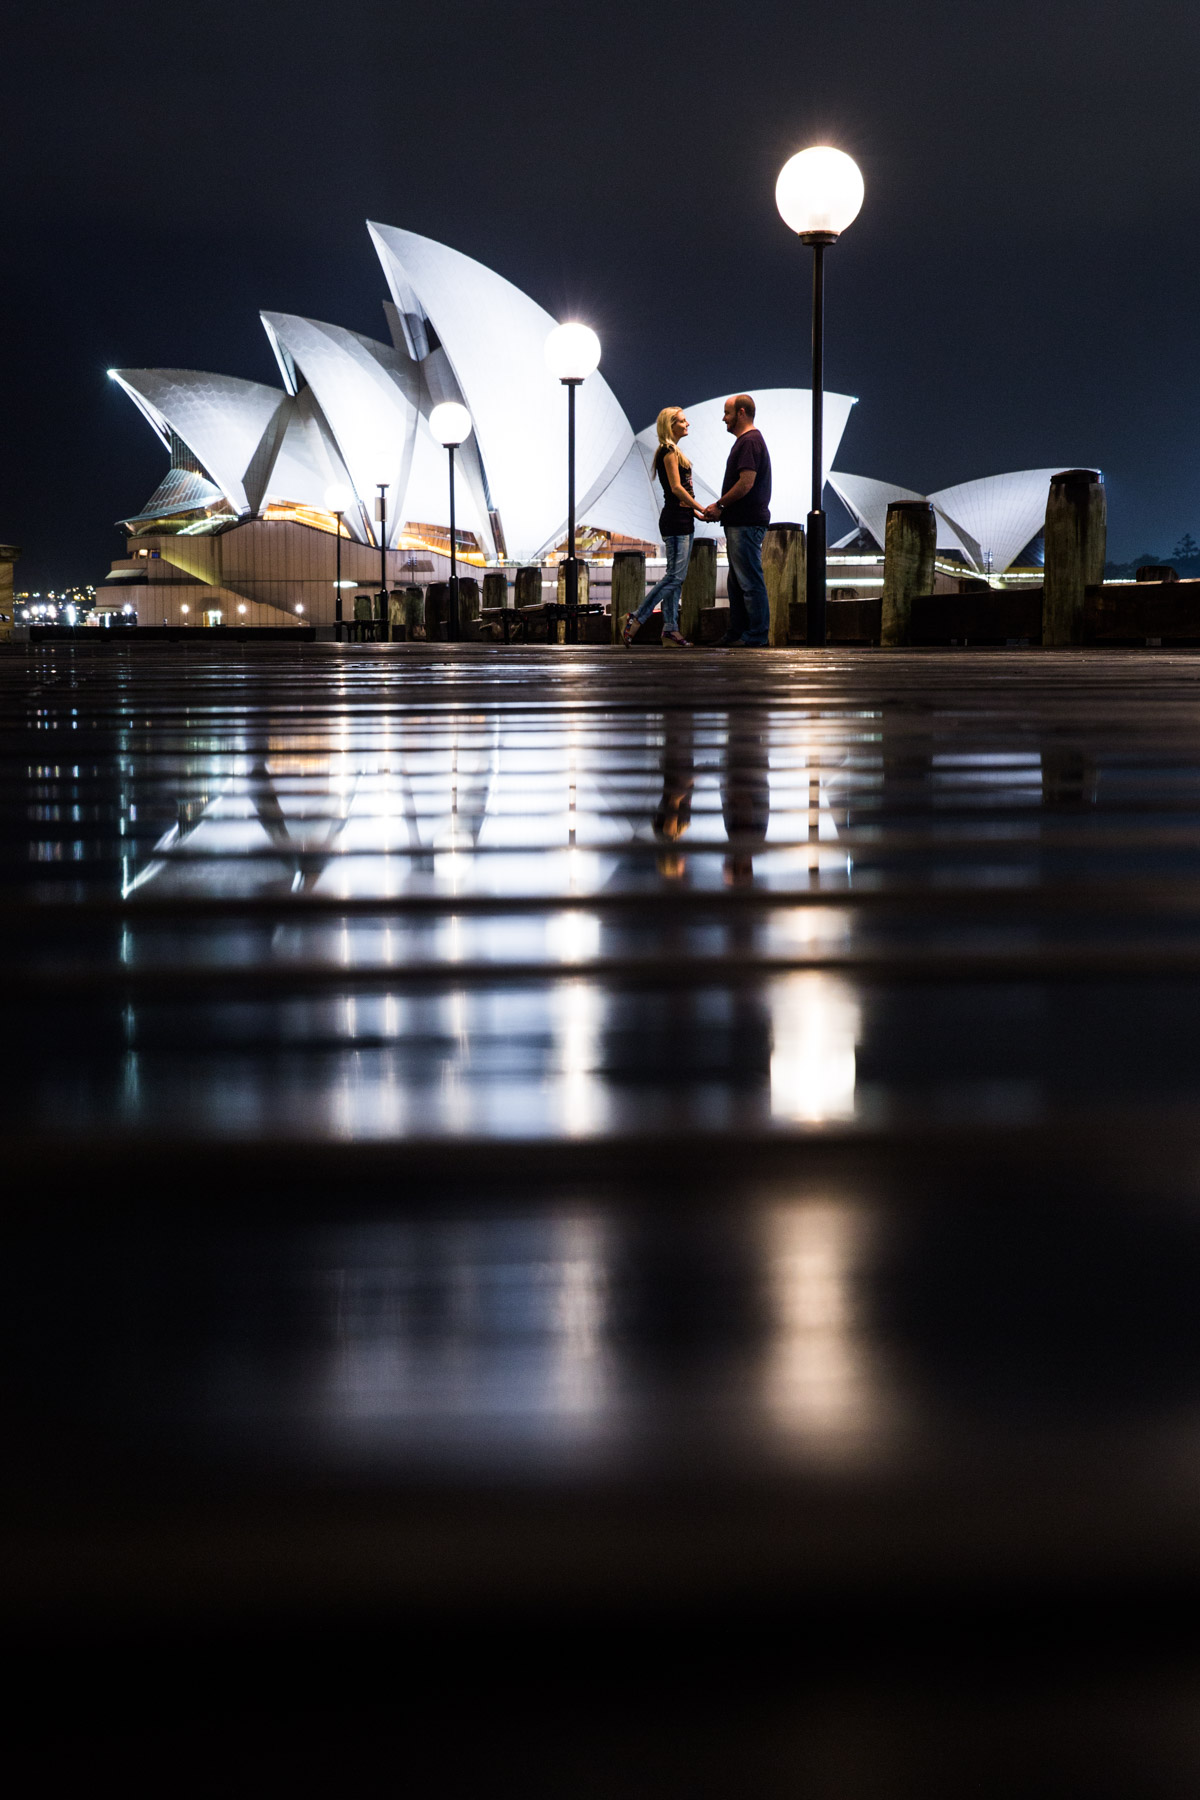 Sydney Engagement Photographer Richard Murgatroyd